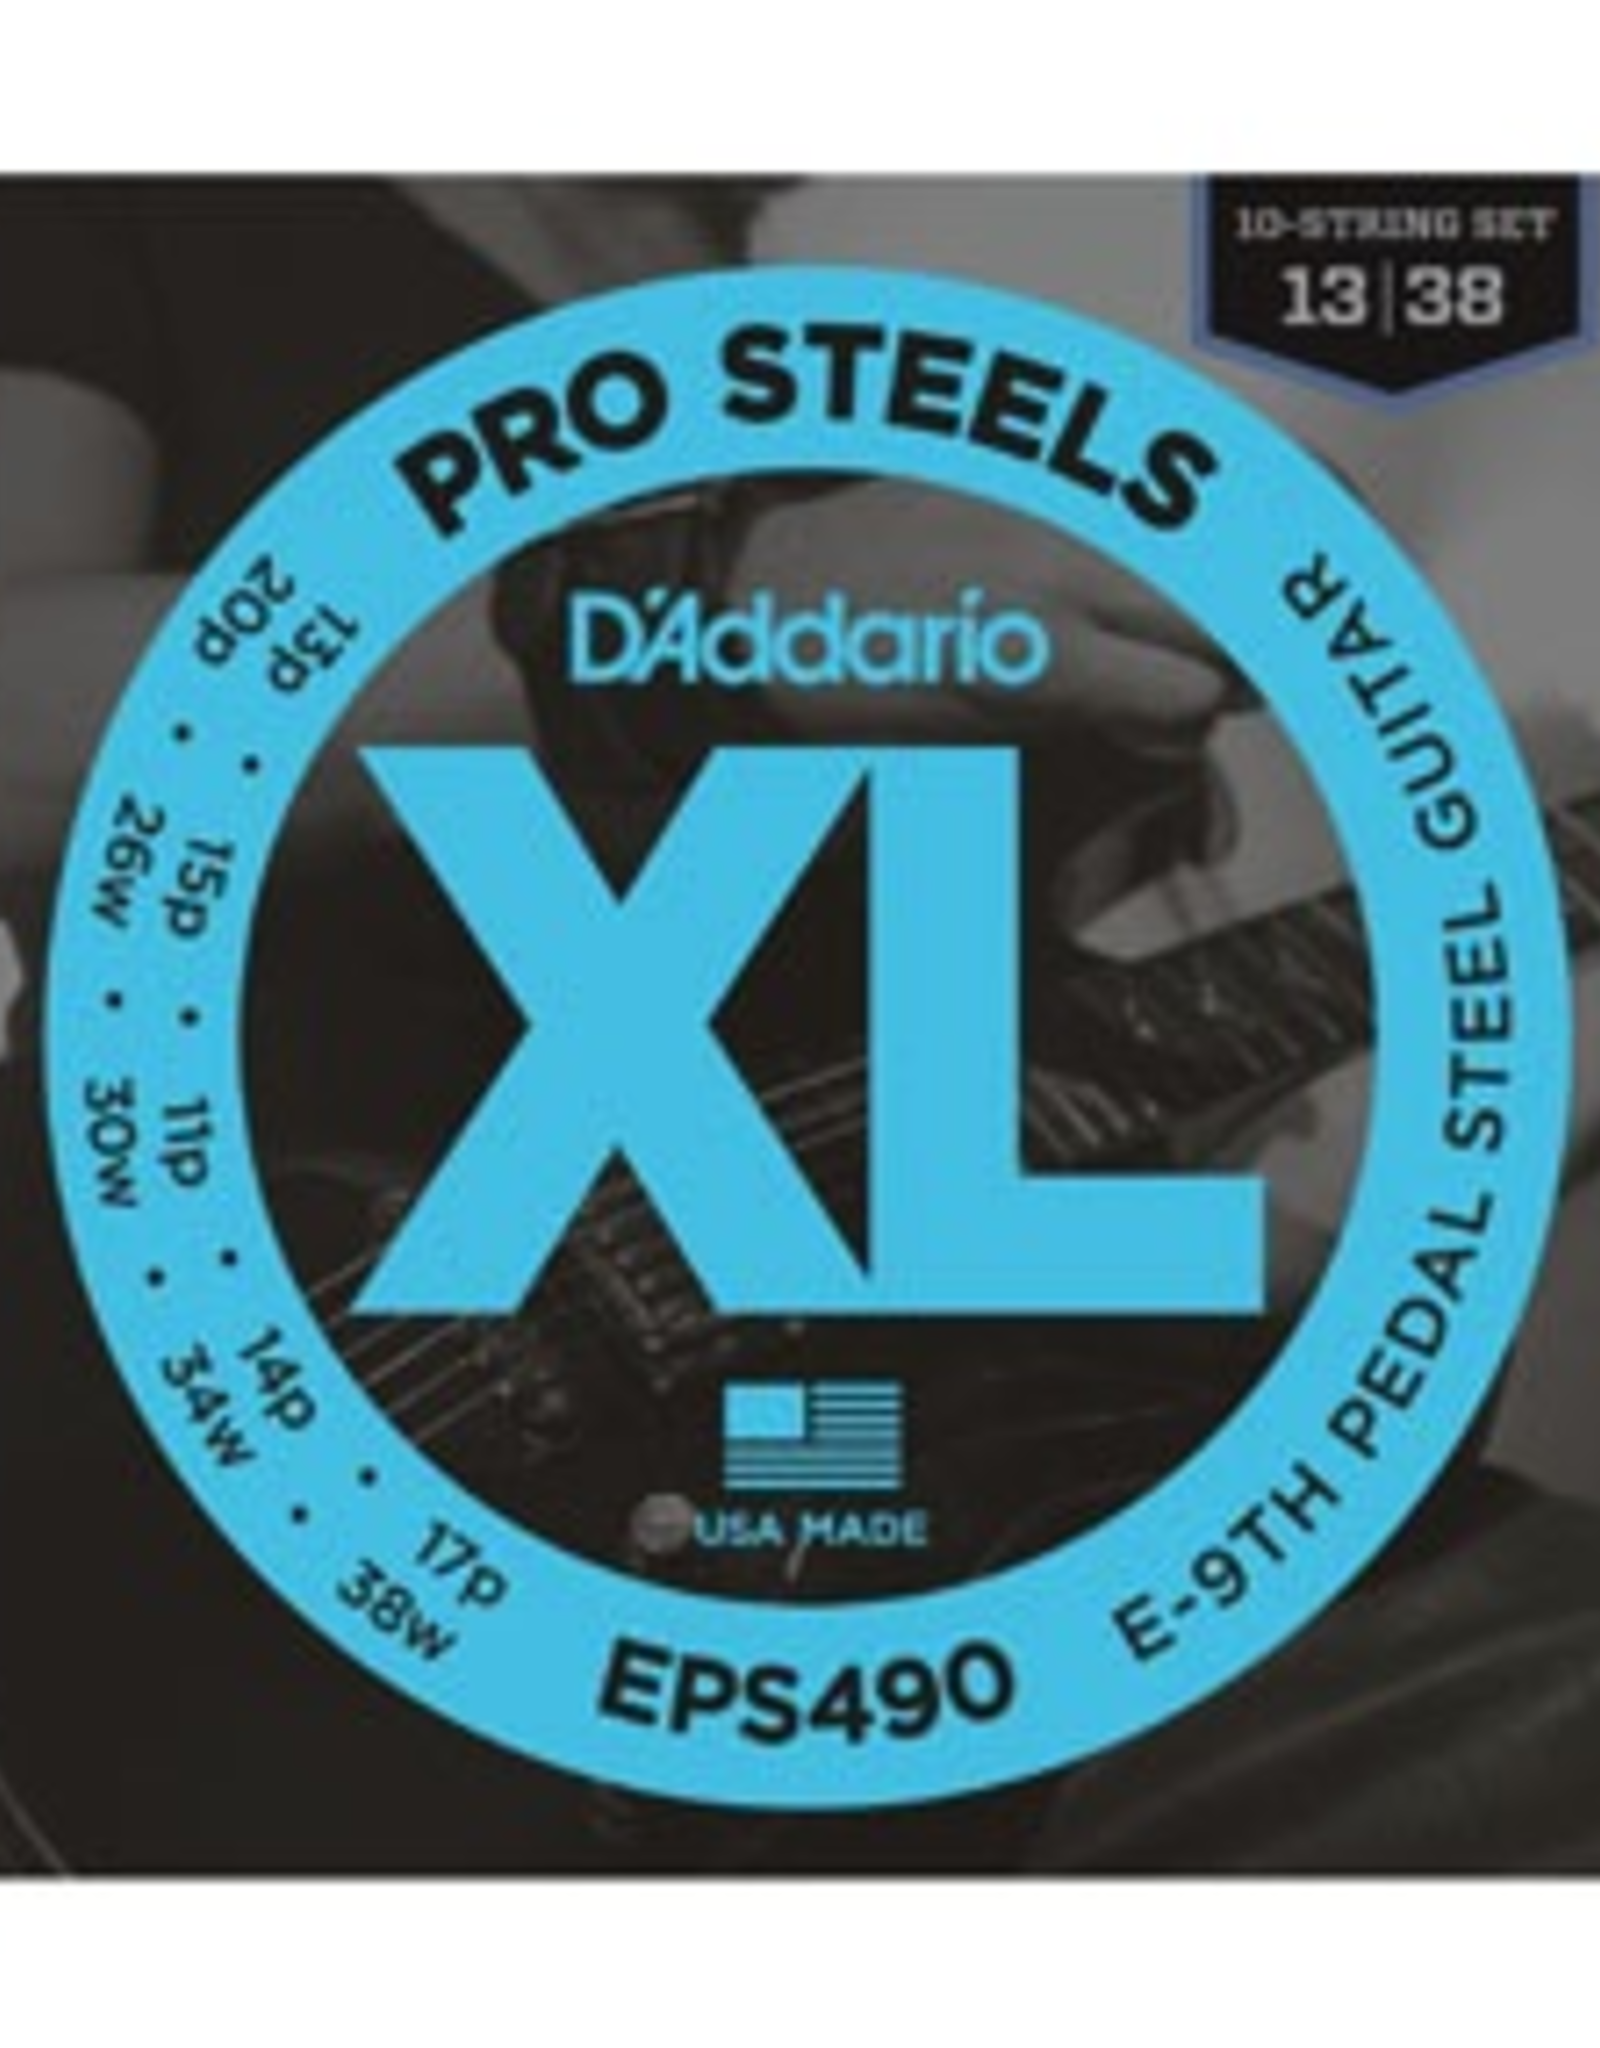 D'Addario D'Addario E9th-Pedal Steel Guitar Strings ProSteels .013p-.038w